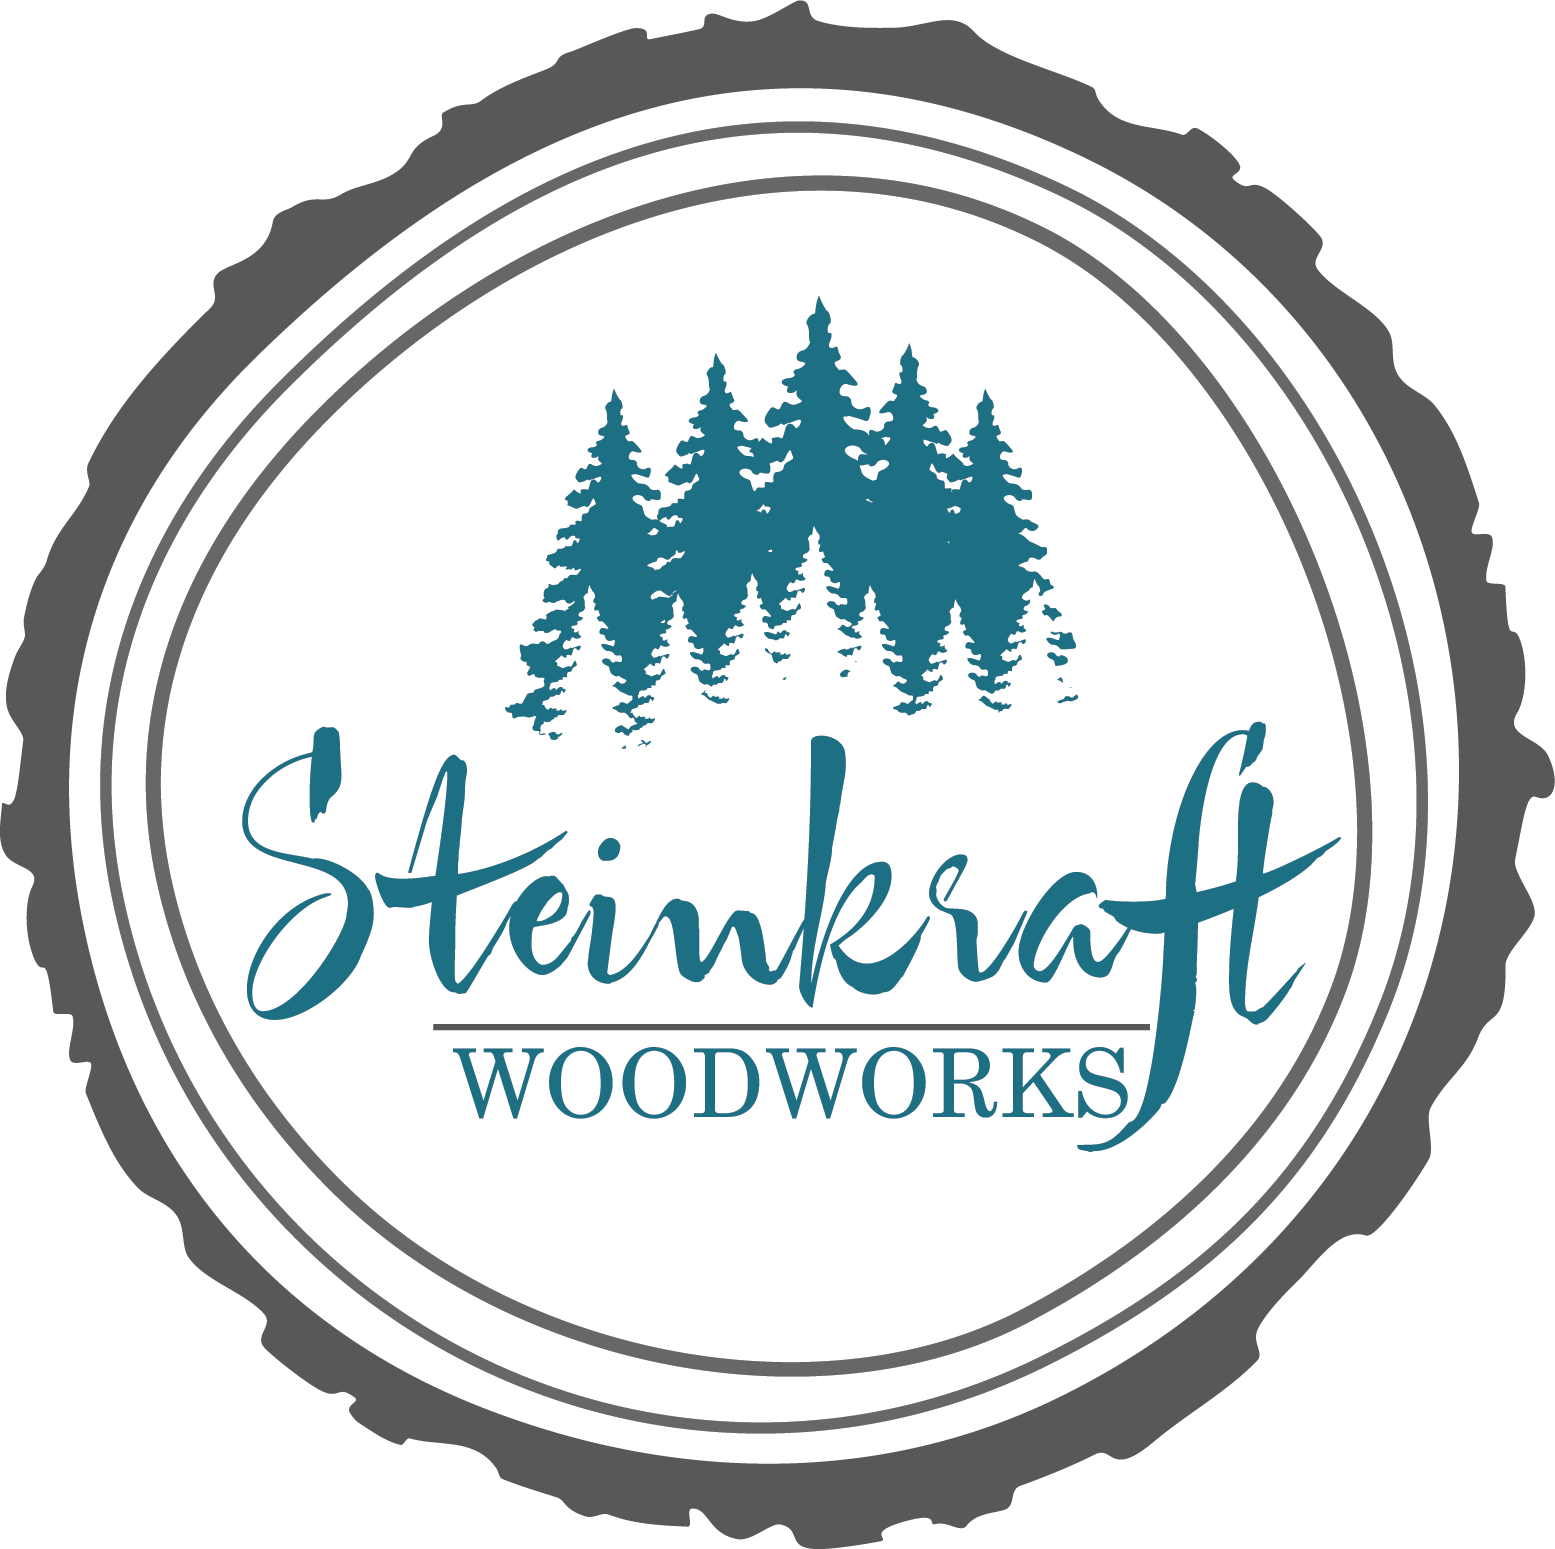 Steinkraft Woodworks